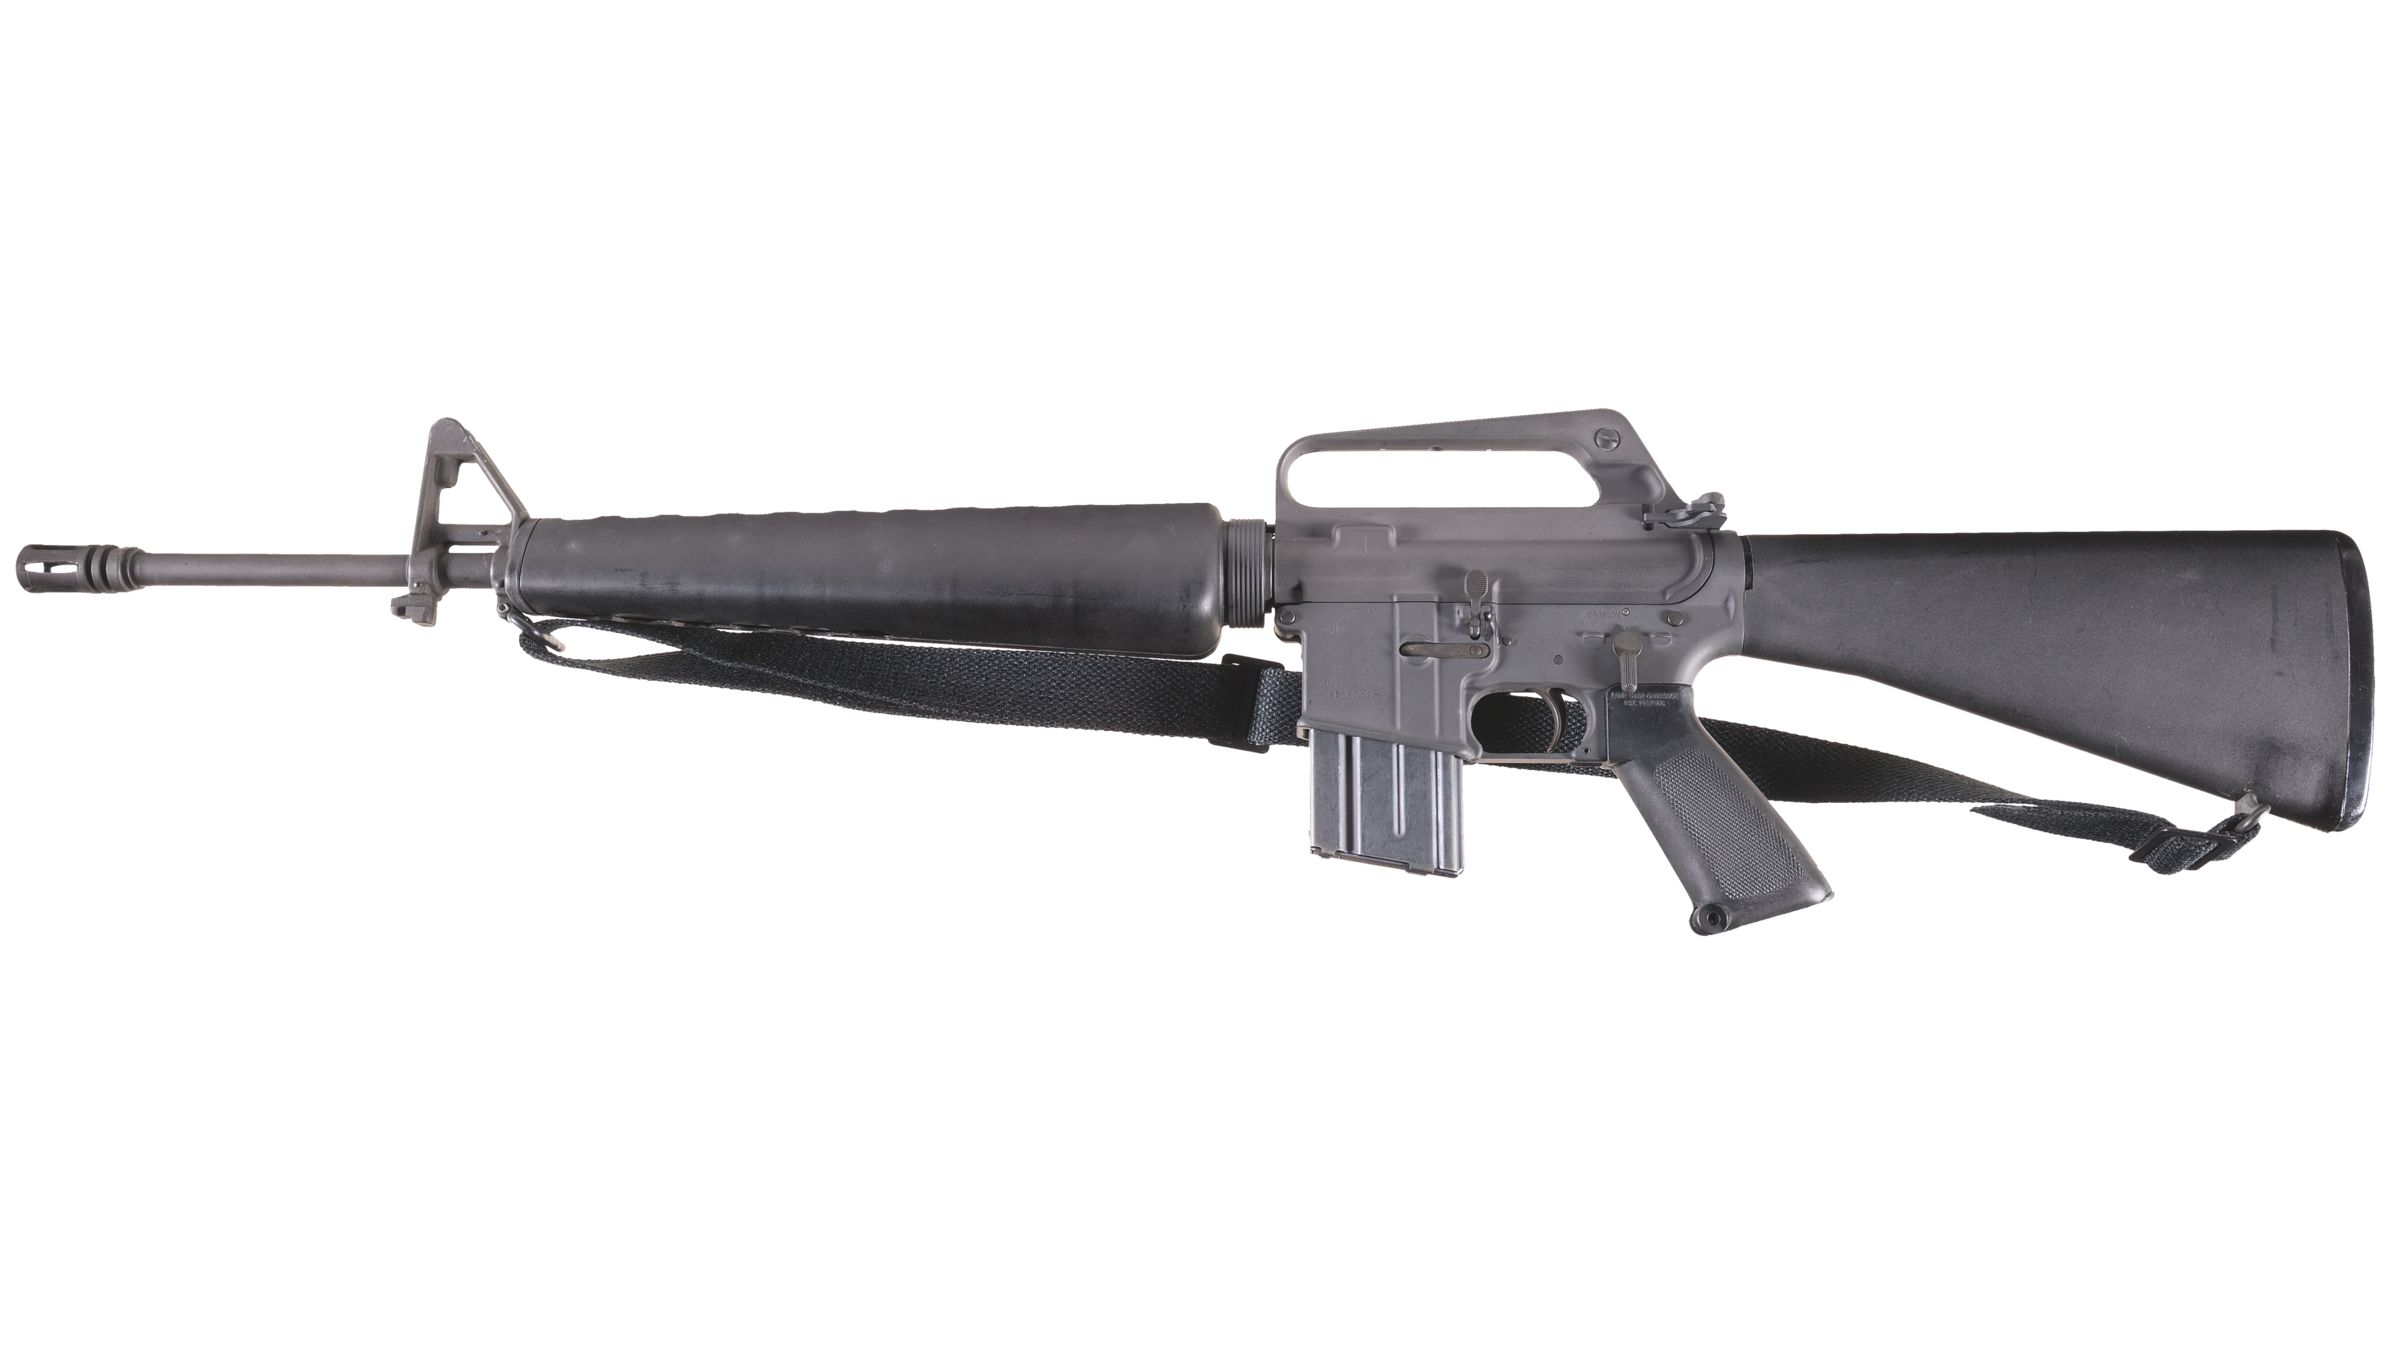 Excellent Colt M16A1 Fully Automatic Class III Assualt Rifle